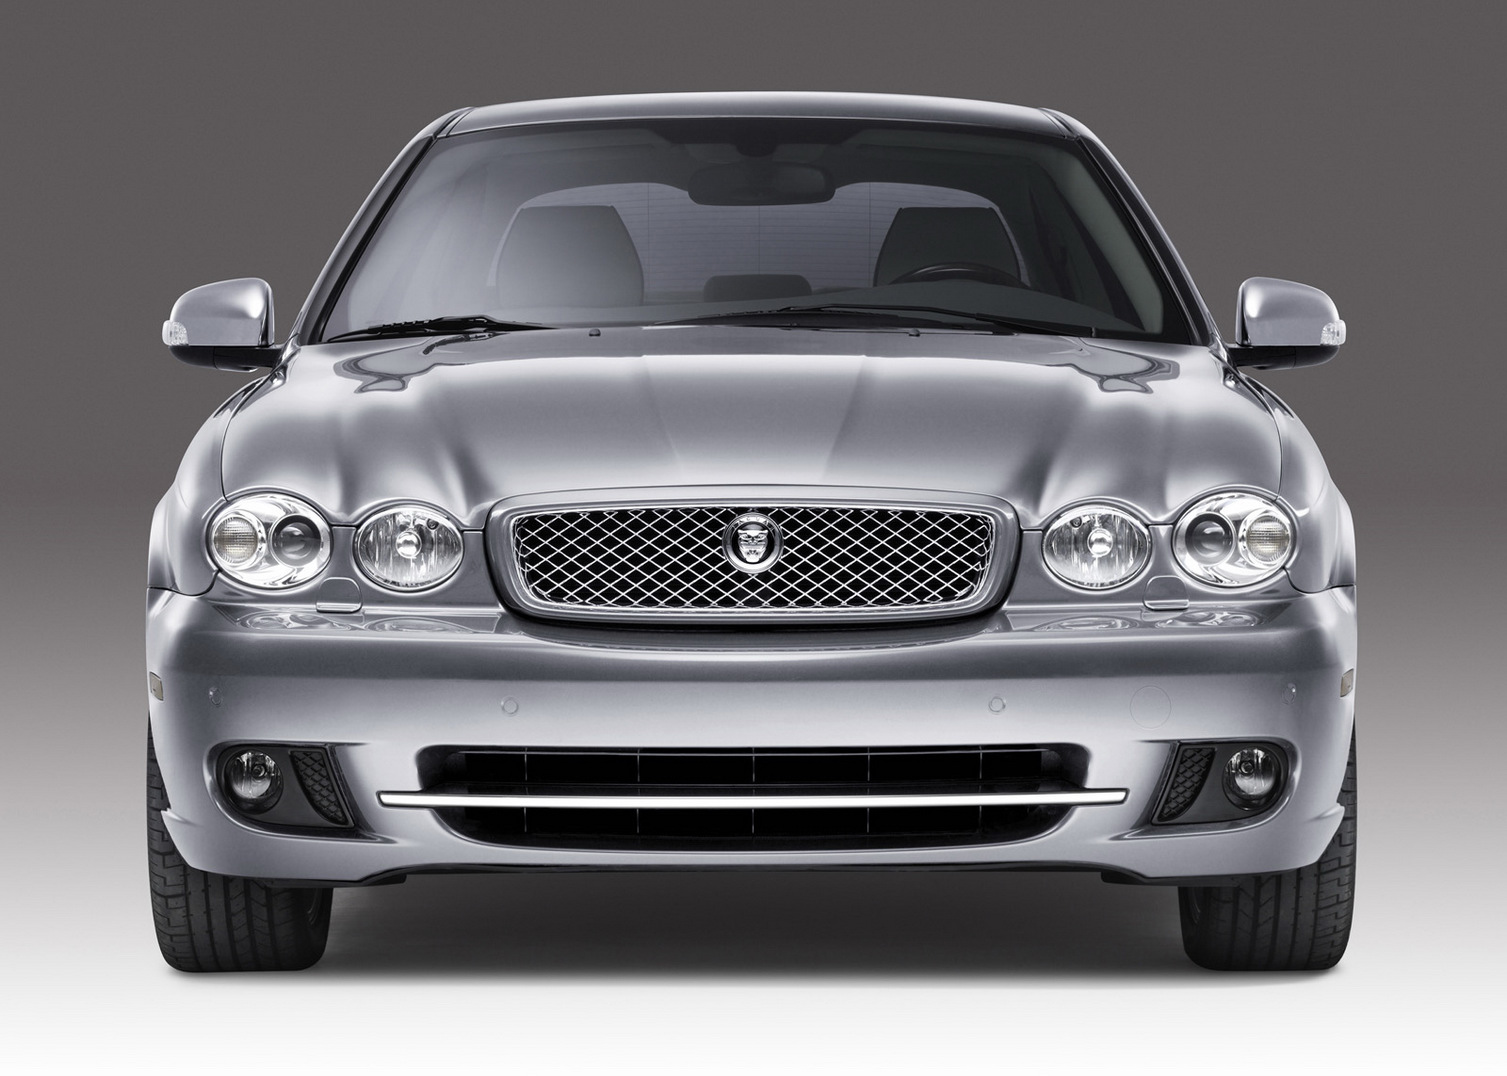 Jaguar X-Type successor planned for 2015